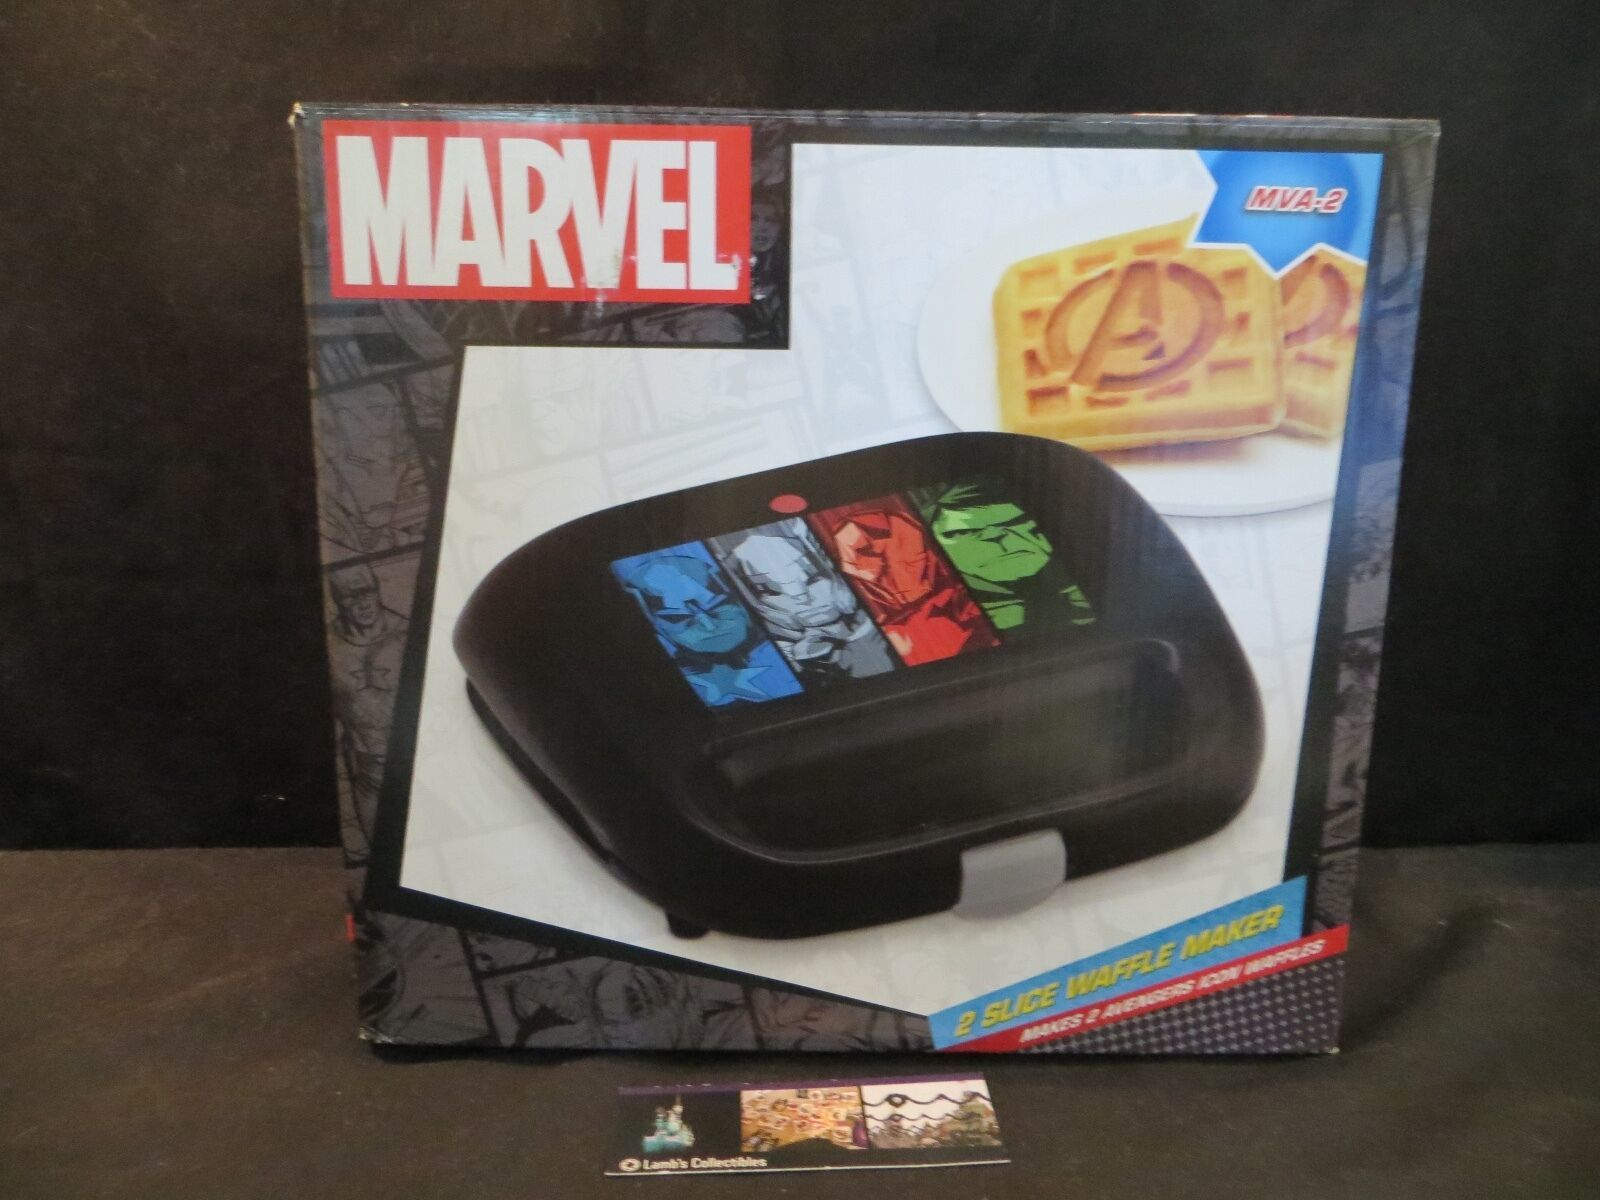 Primary image for Marvel Avengers Waffle Maker MVA-2 Kitchen Appliance